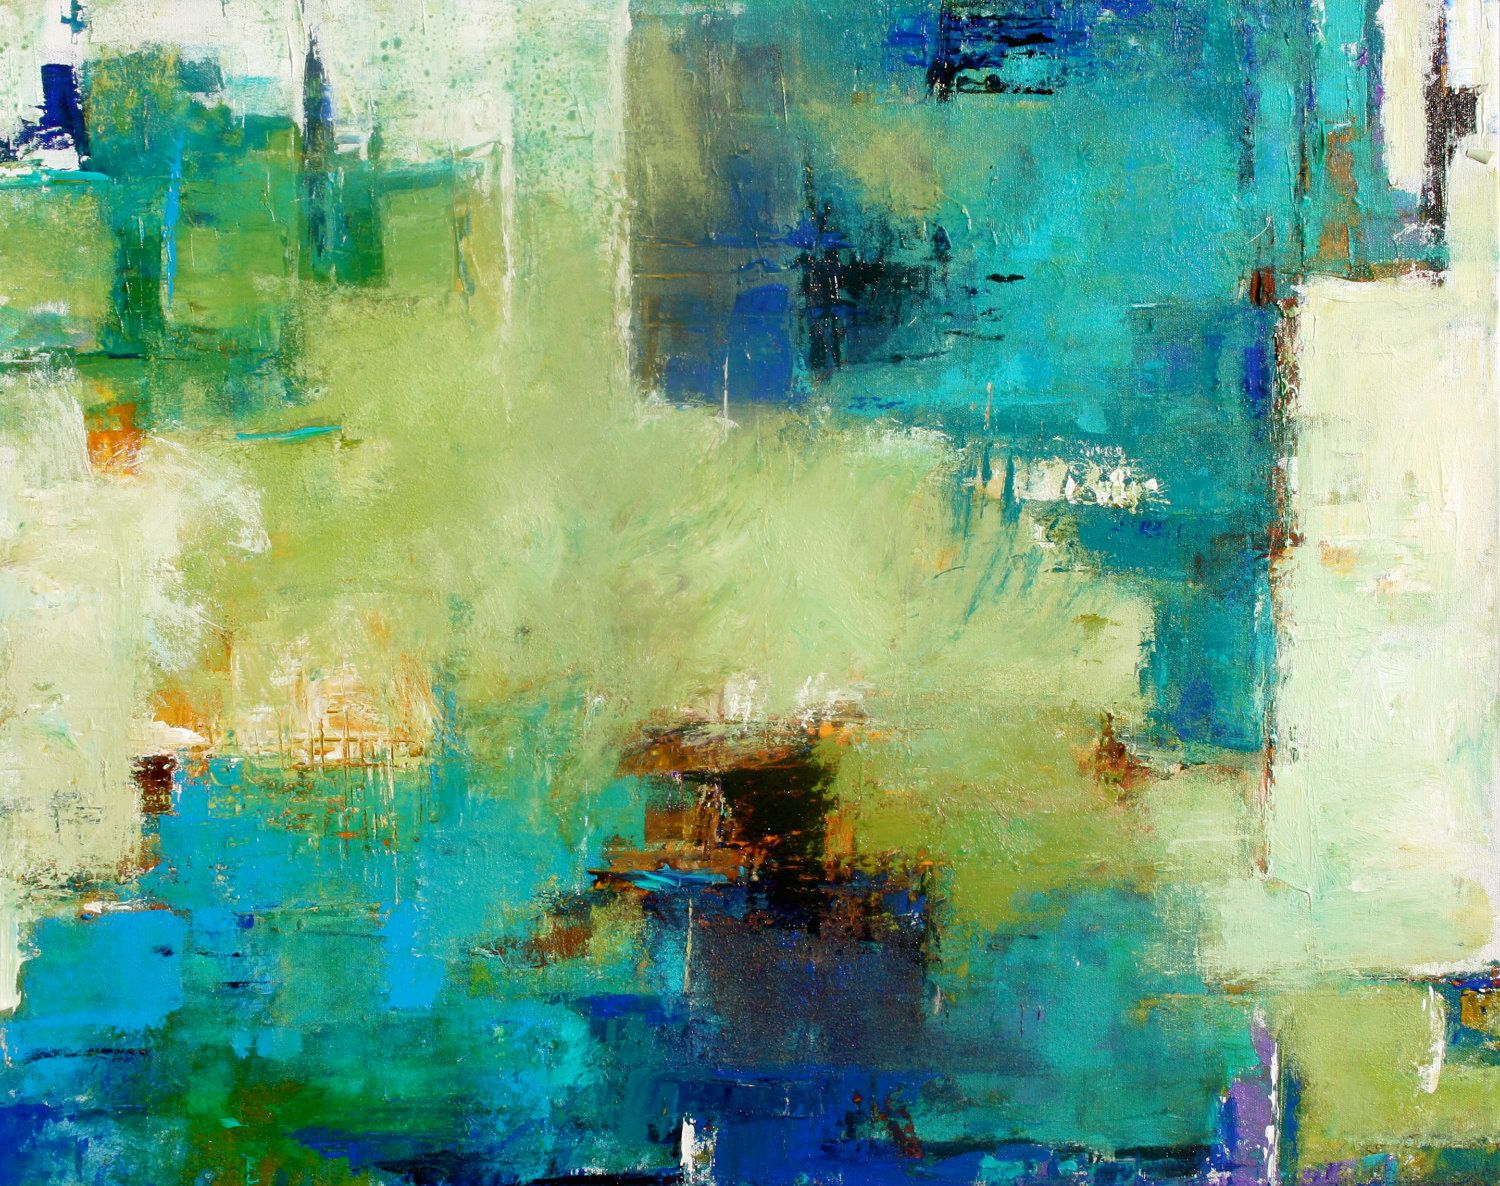 Contemporary Abstract Painting Abstract Painting Original Art Blue Colors Abstract Art Acrylic On